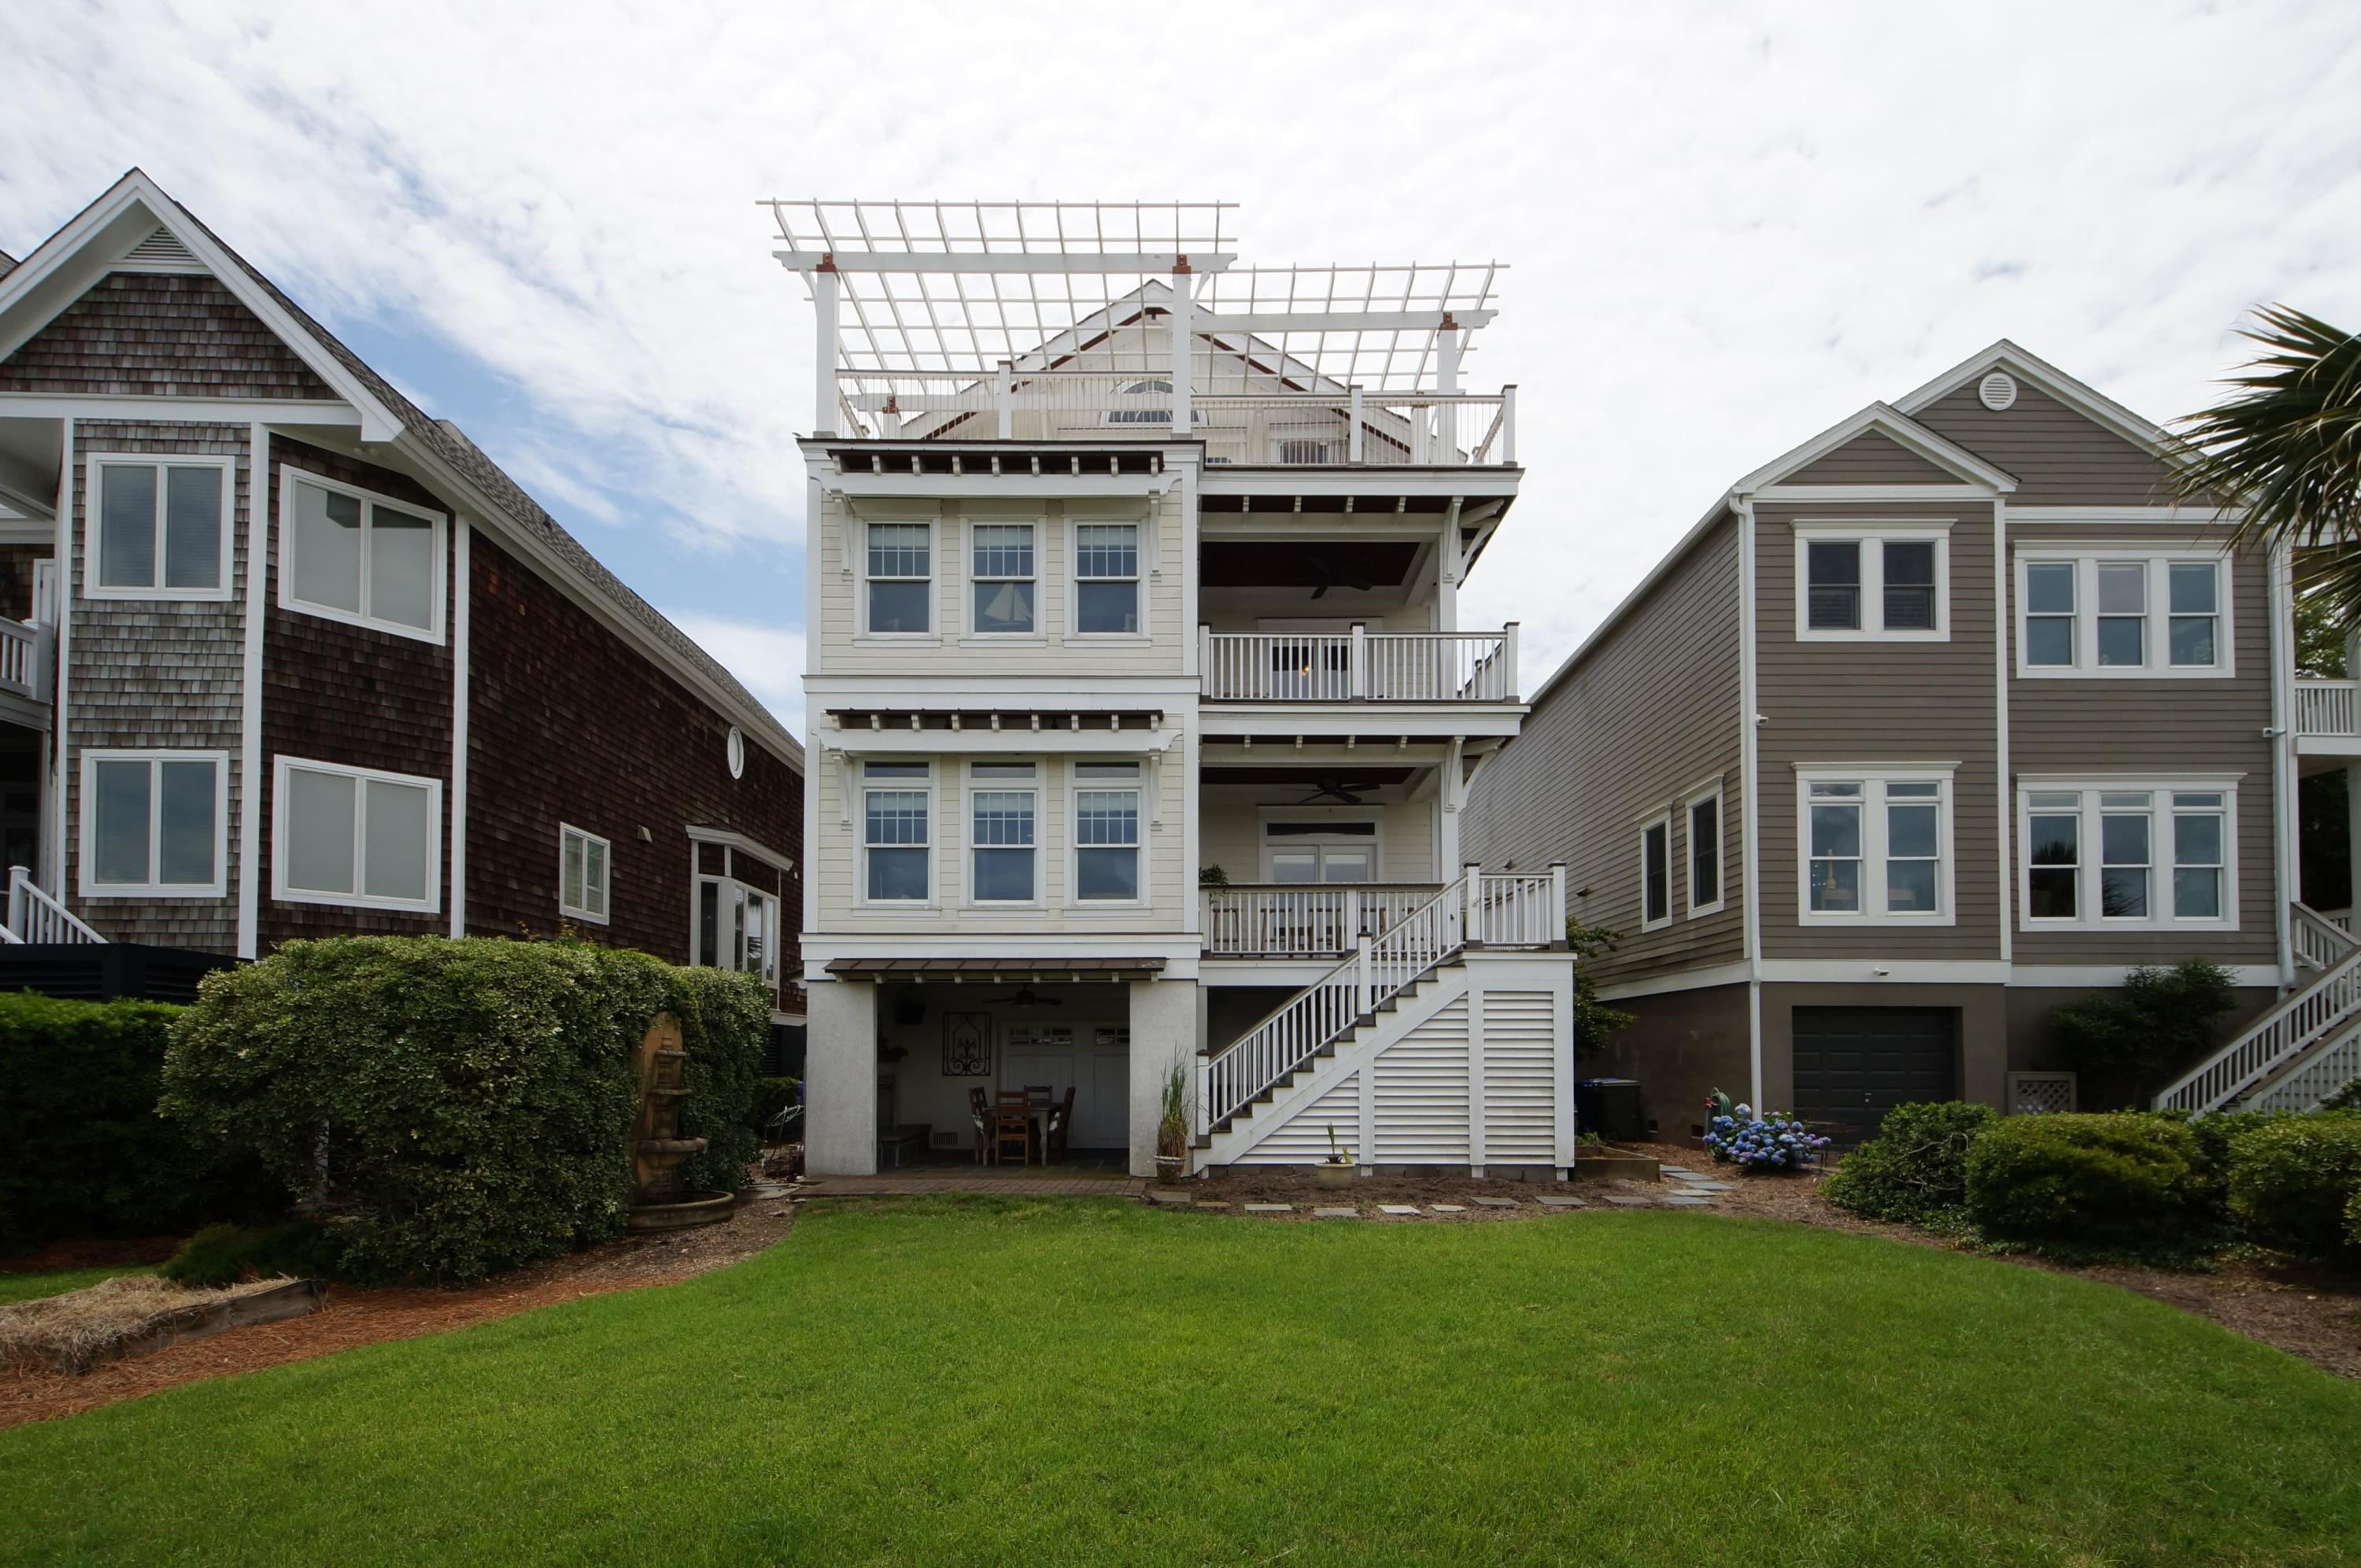 Wild Dunes Homes For Sale - 50 Morgan Place, Isle of Palms, SC - 28